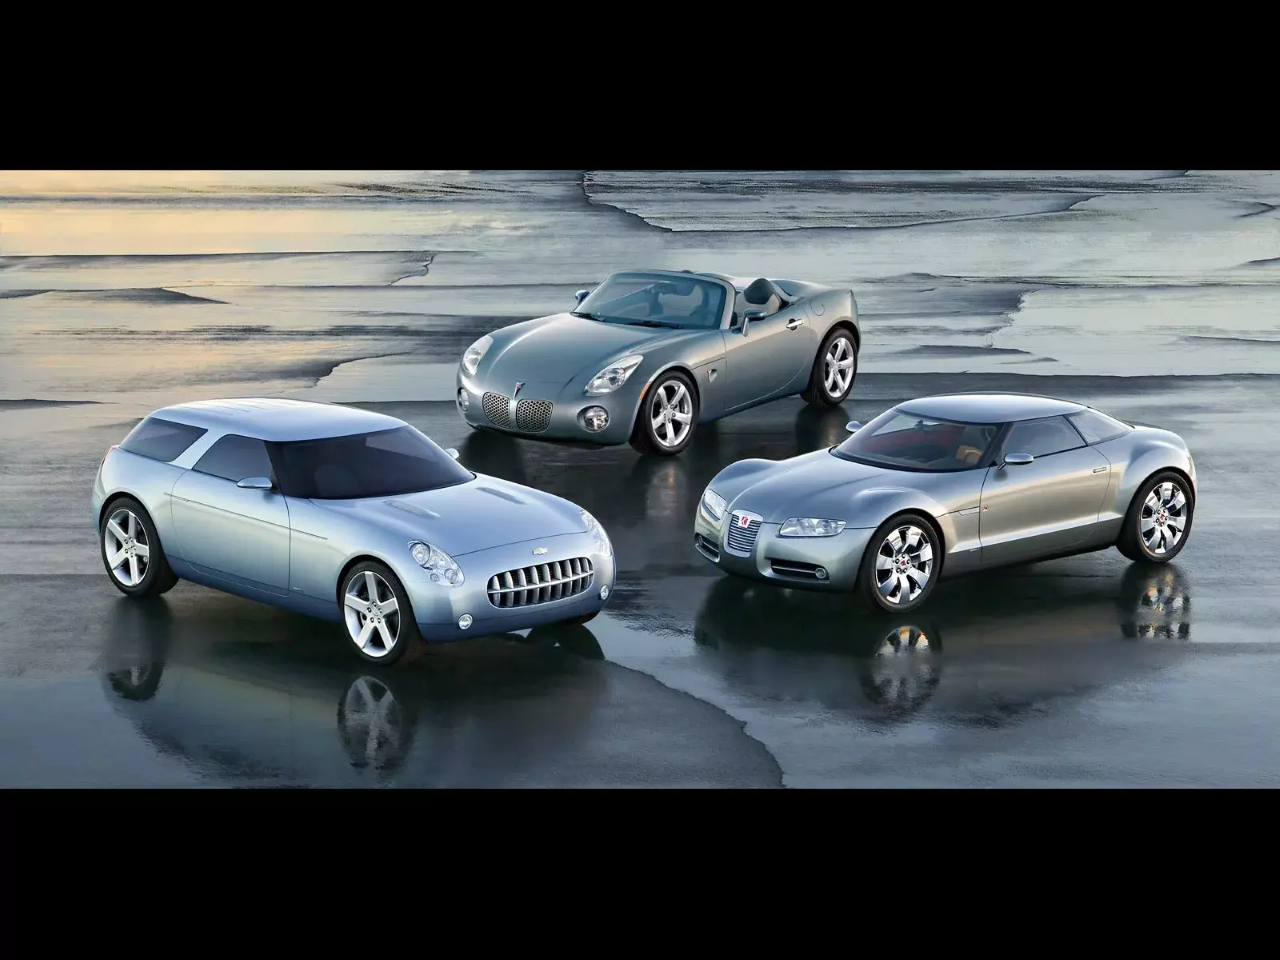 Kappa collective: the 2004 Chevrolet Nomad concept, the 2004 Pontiac Solstice and the 2004 Saturn Curve concept. Photo courtesy of GM